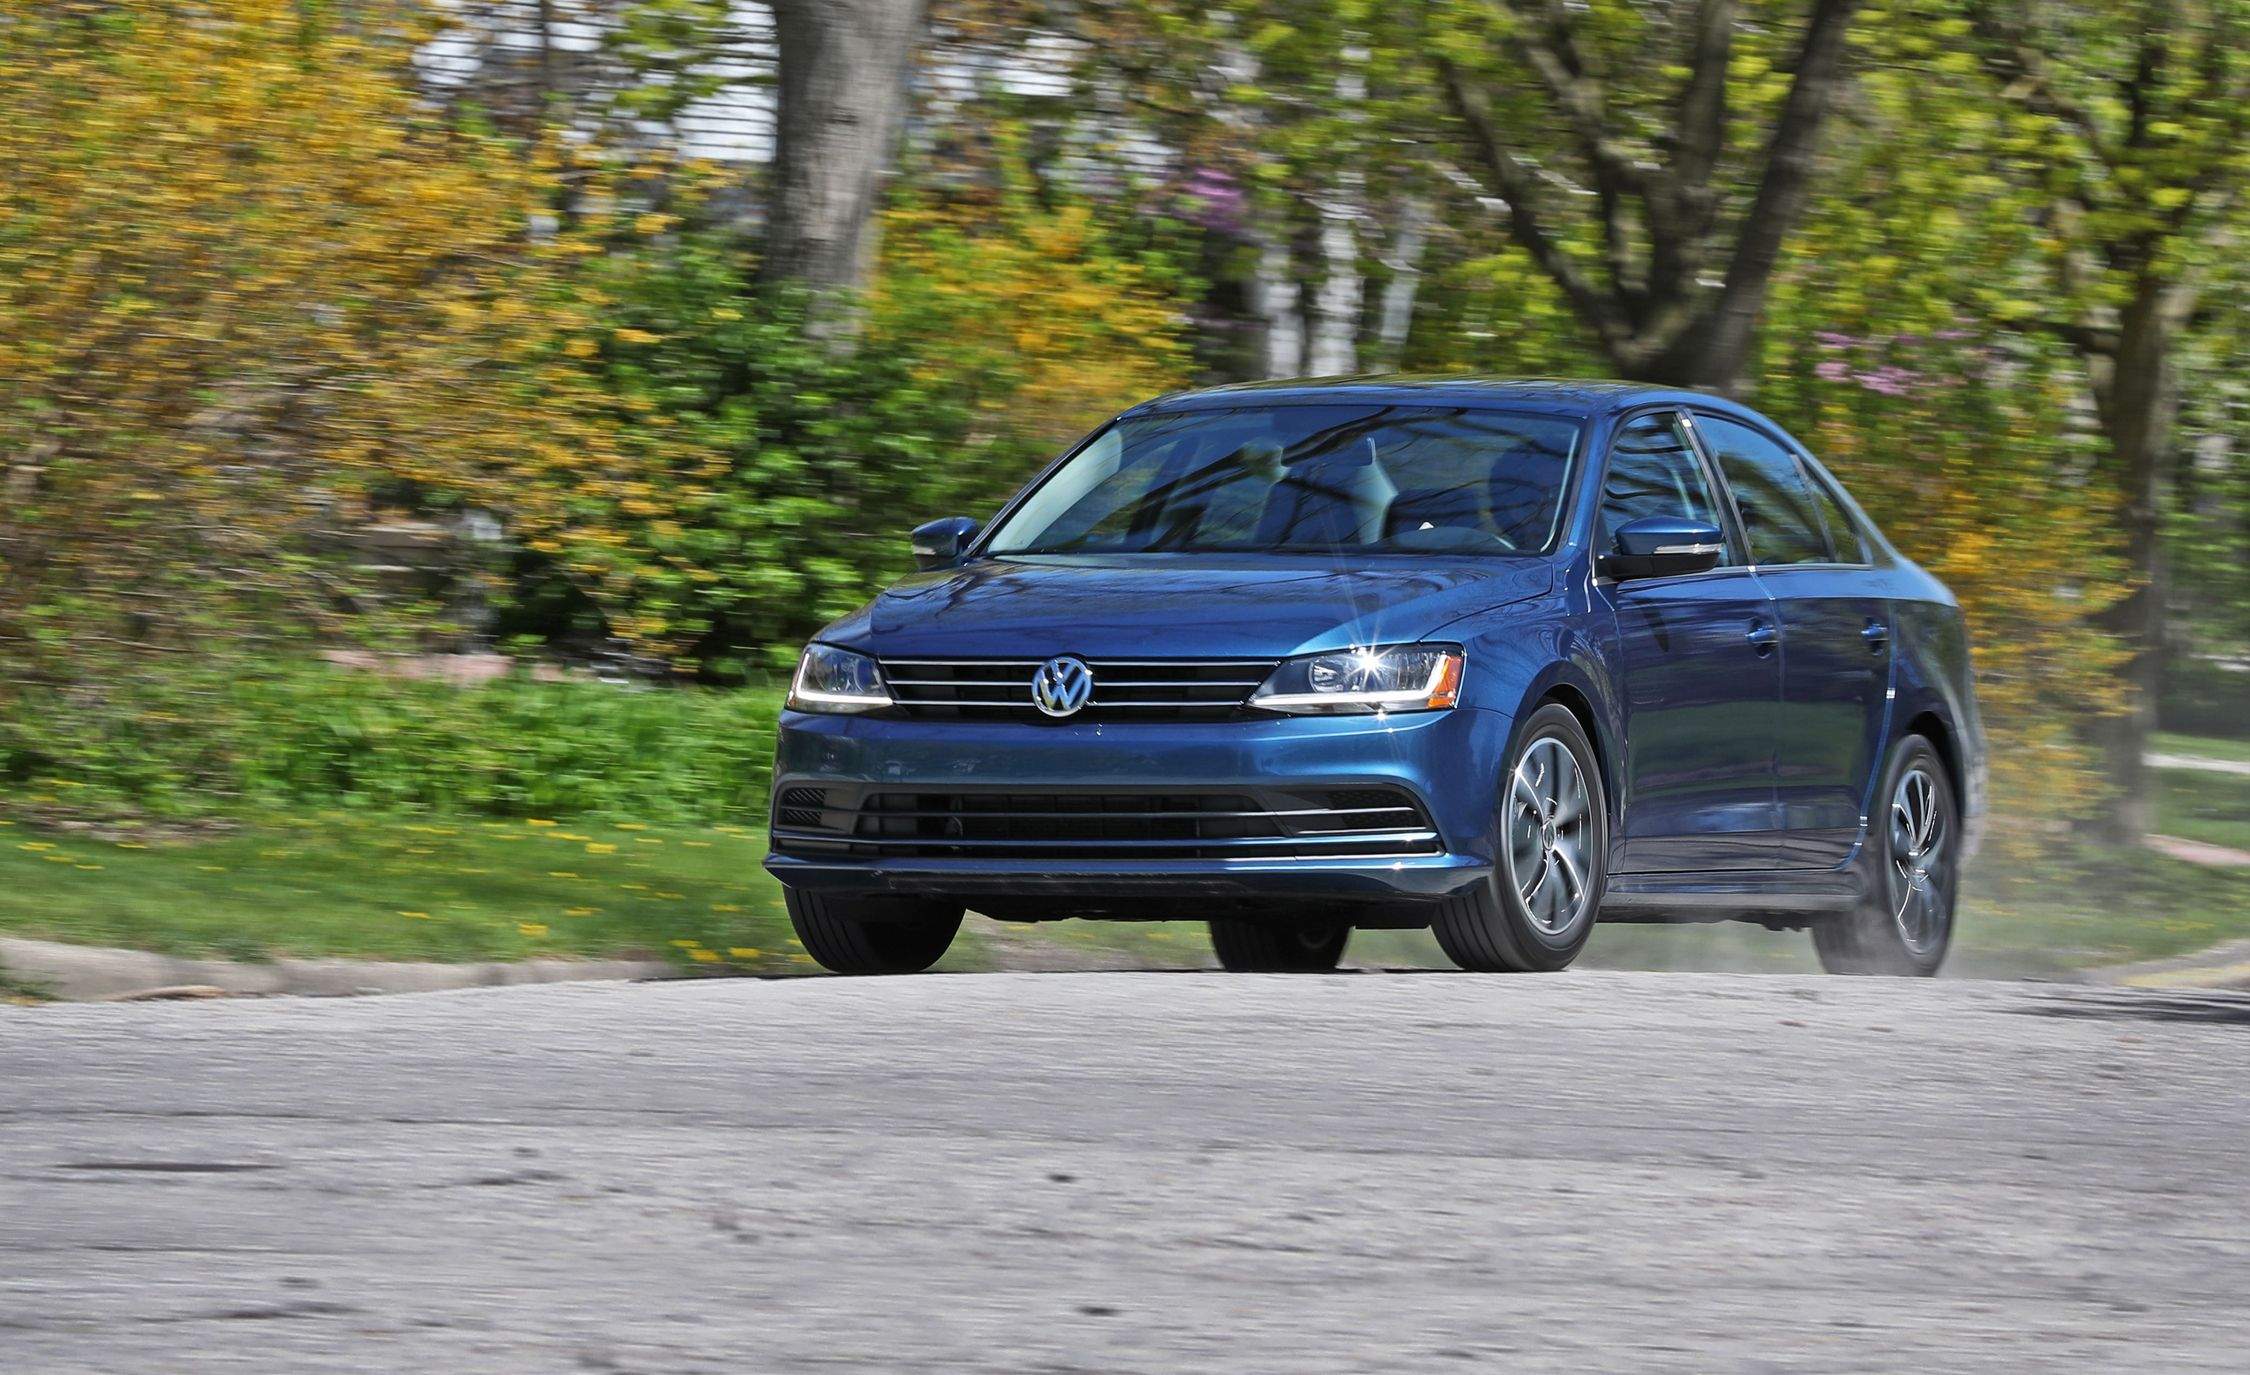 Volkswagen Jetta Reviews | Volkswagen Jetta Price, Photos, and Specs | Car  and Driver